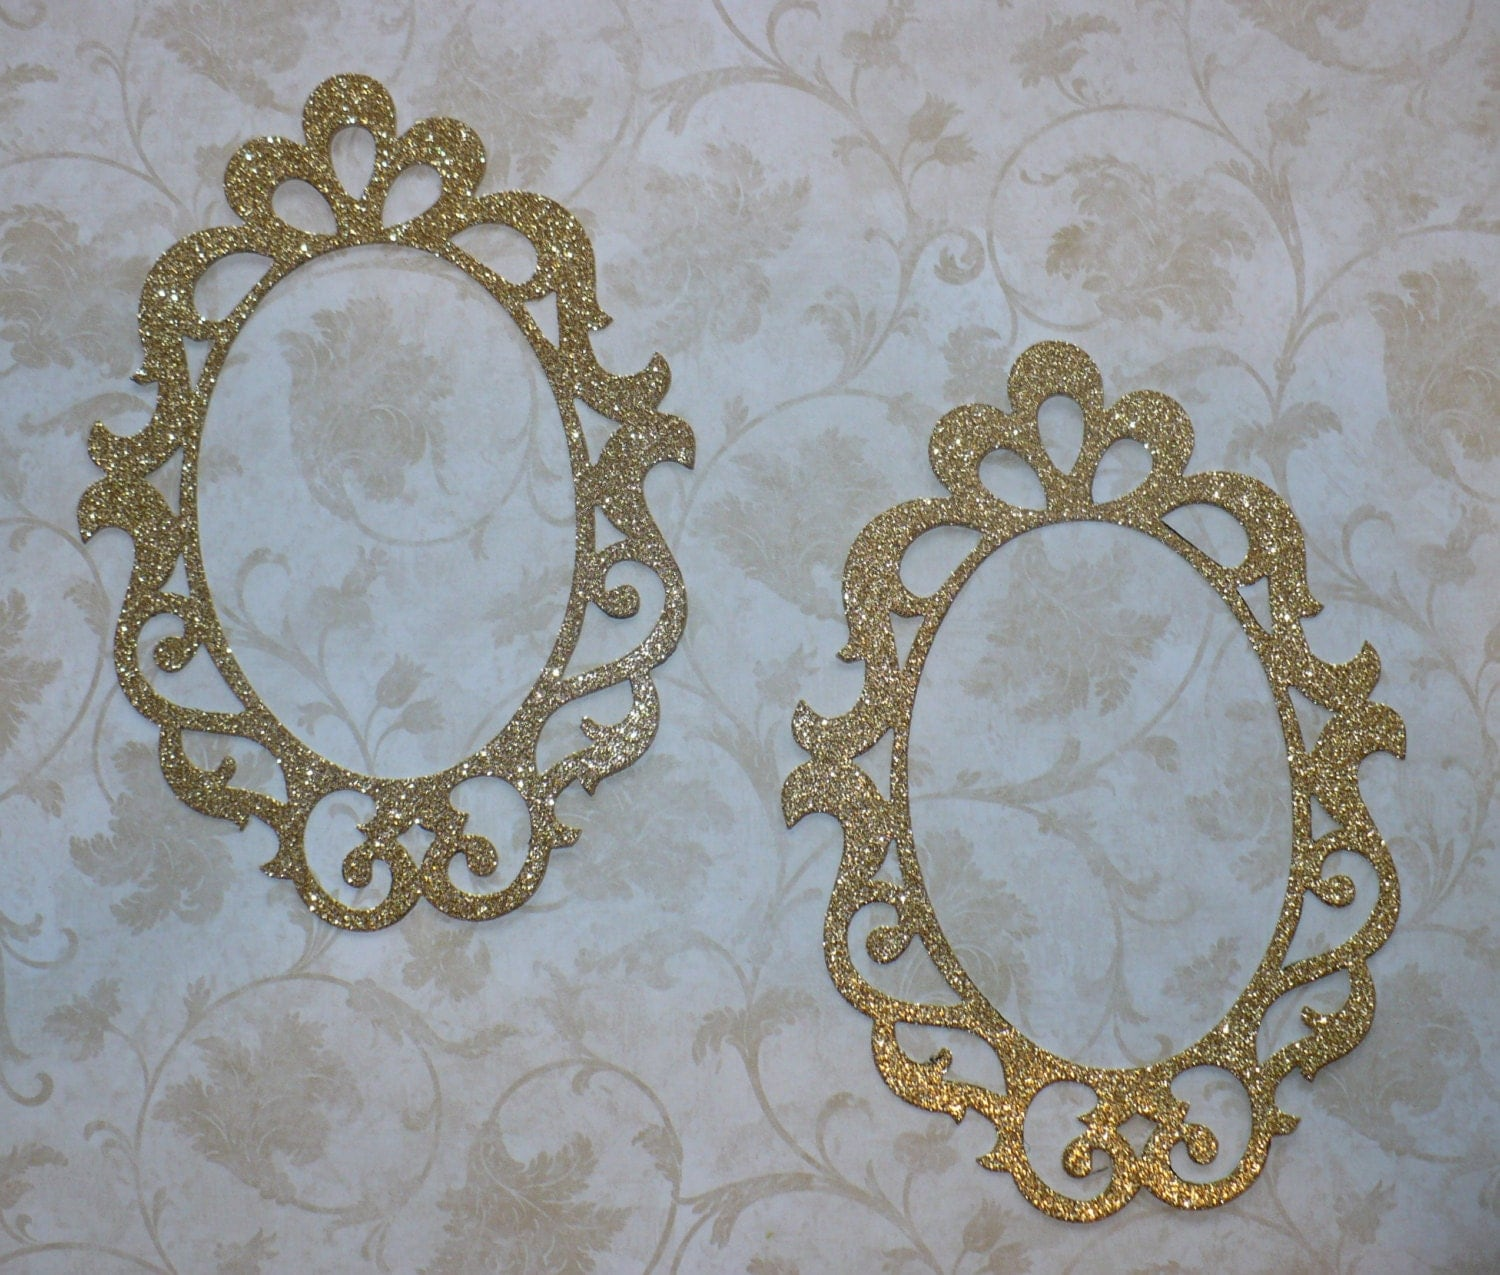 sizzix oval fancy shape frames 2 pc gold glitter cardstock frames for diy princess party crafts scrapbooking baby girl party